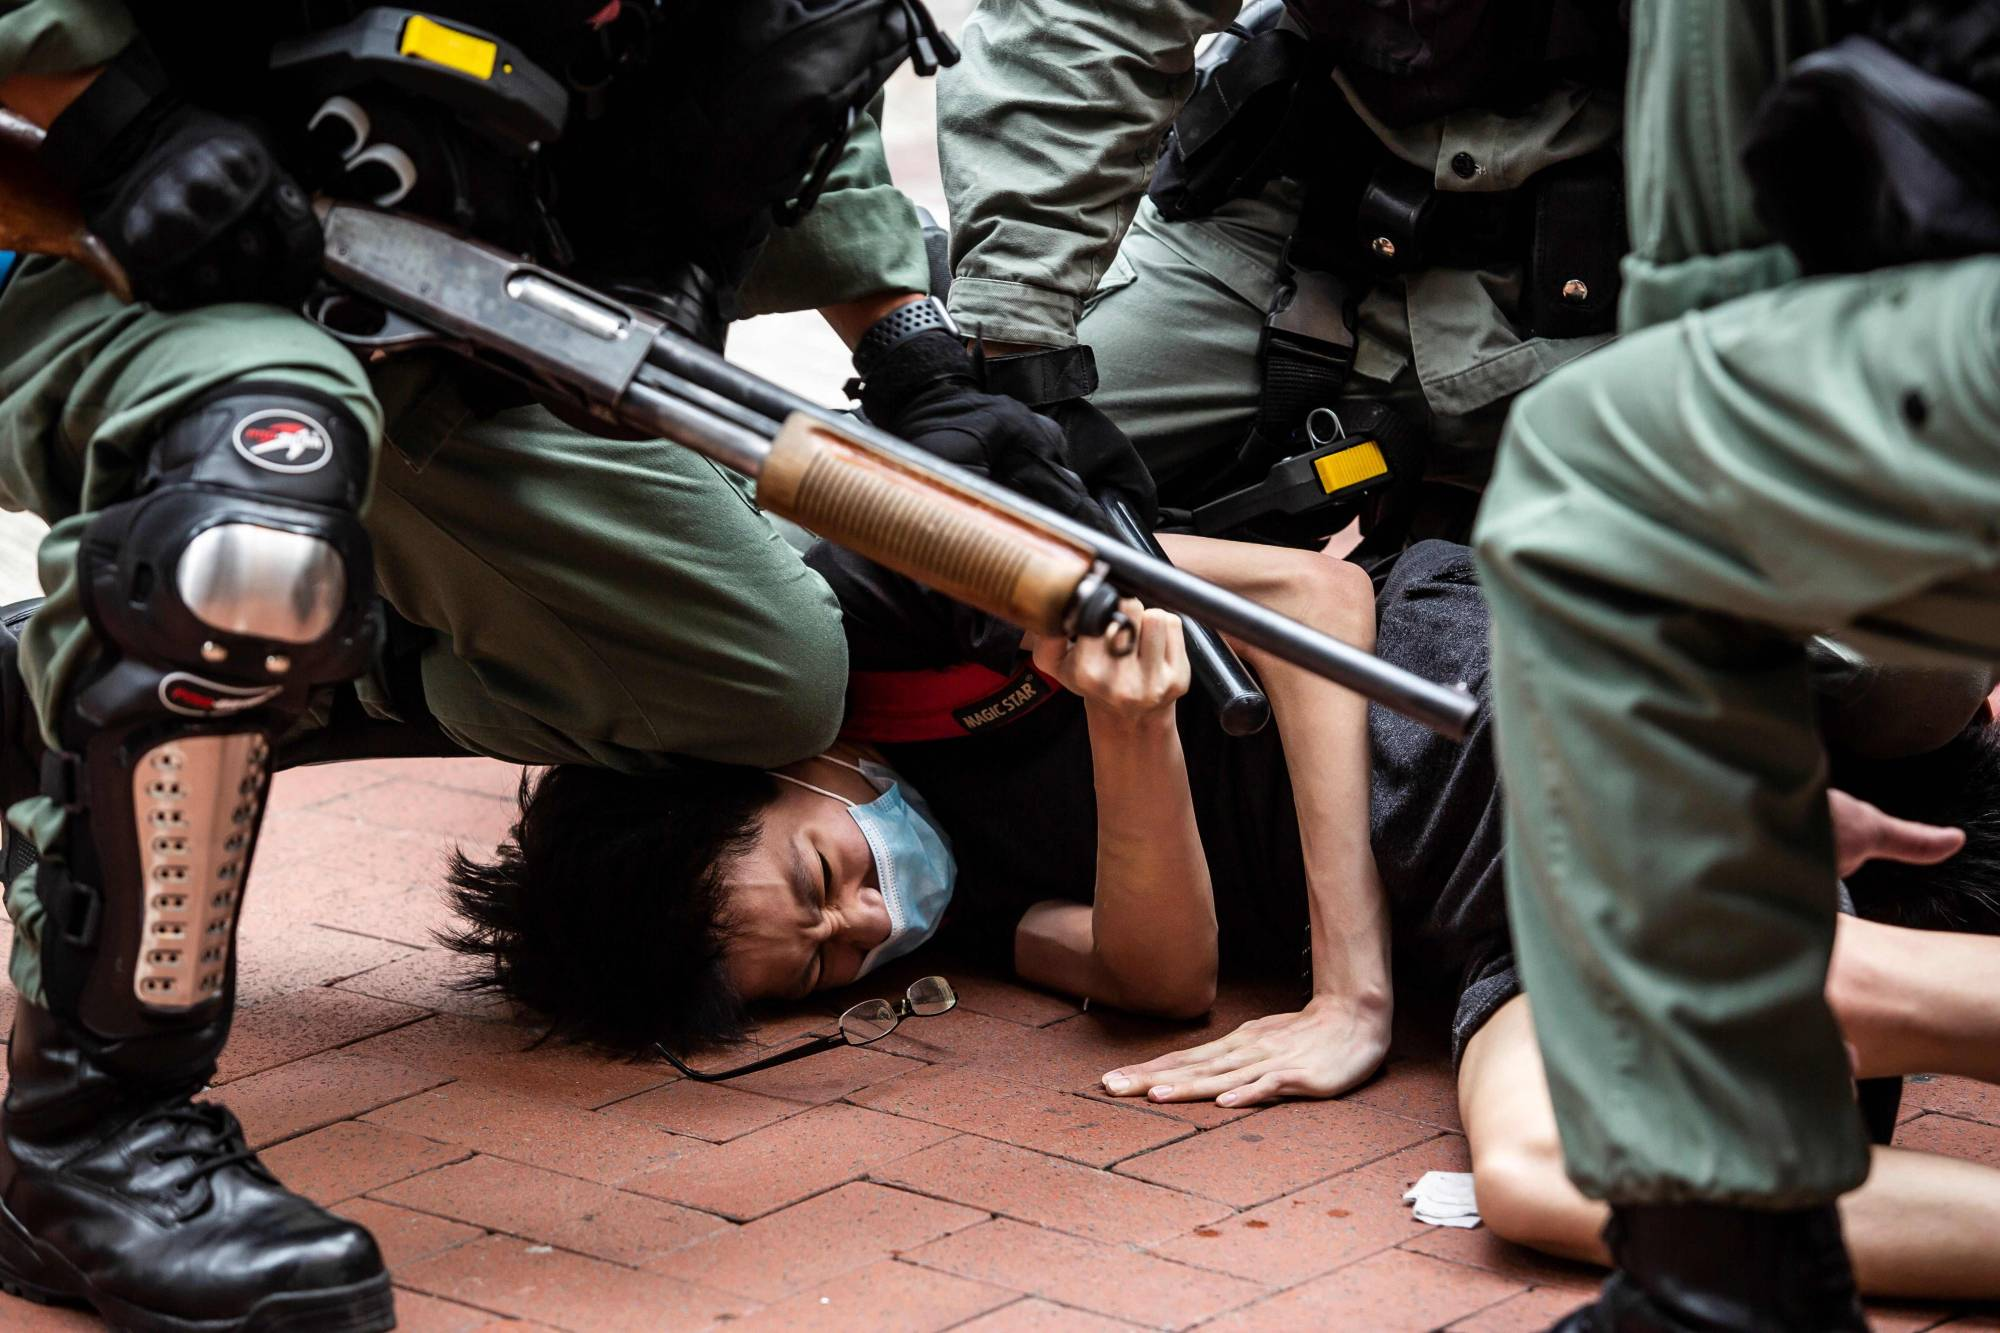 A pro-democracy protester is arrested by police in the Causeway Bay district of Hong Kong on Sunday ahead of planned protests against a proposal to enact new security legislation in Hong Kong. | AFP-JIJI